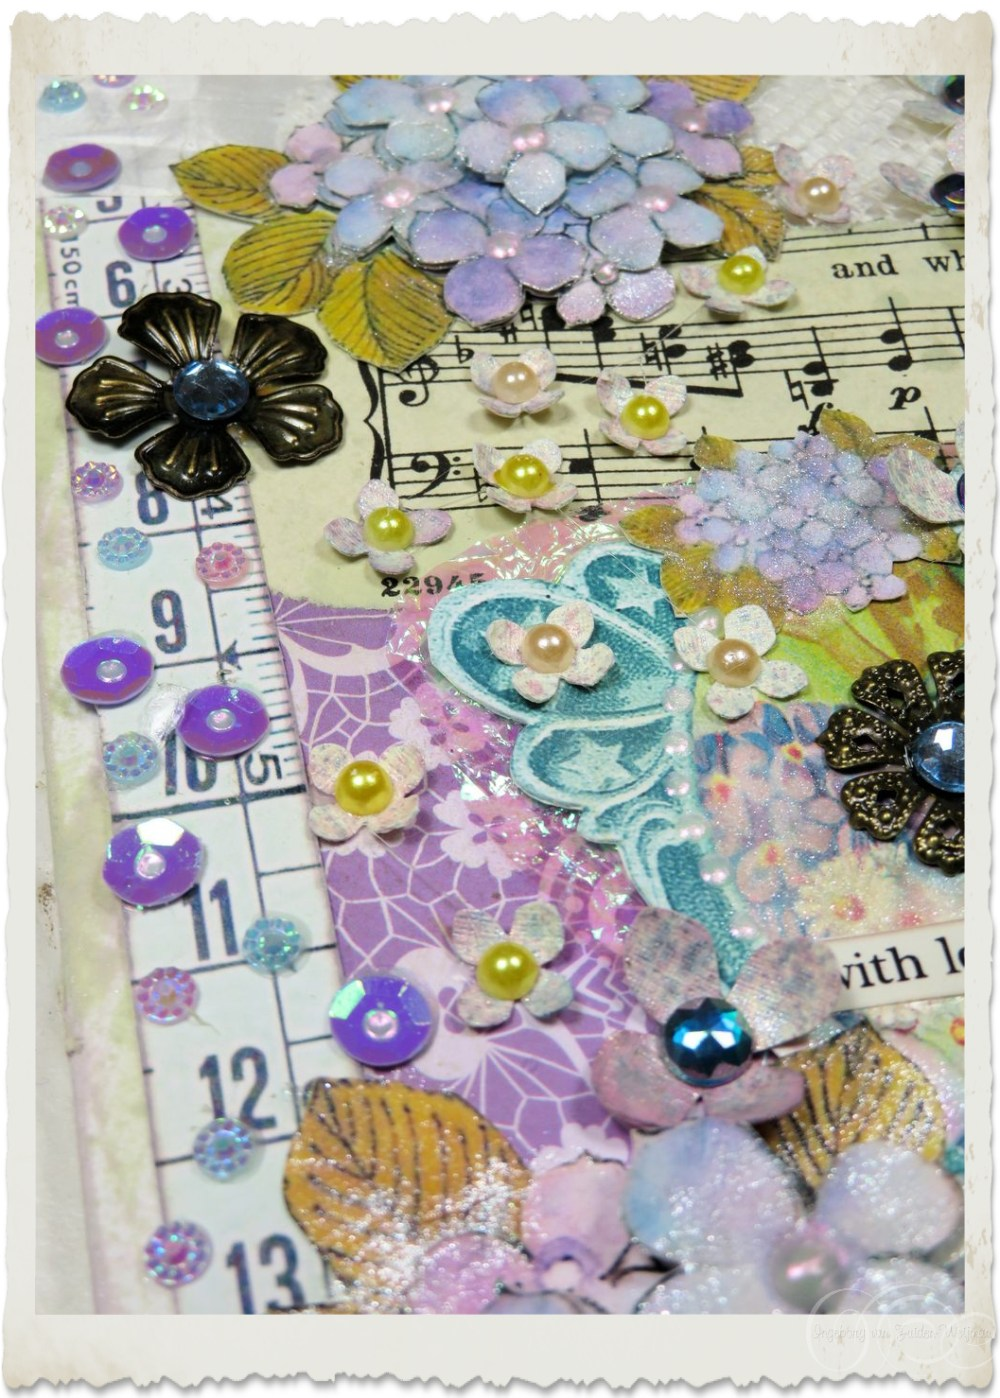 Details of iridescent sequins and paper flowers with pearls